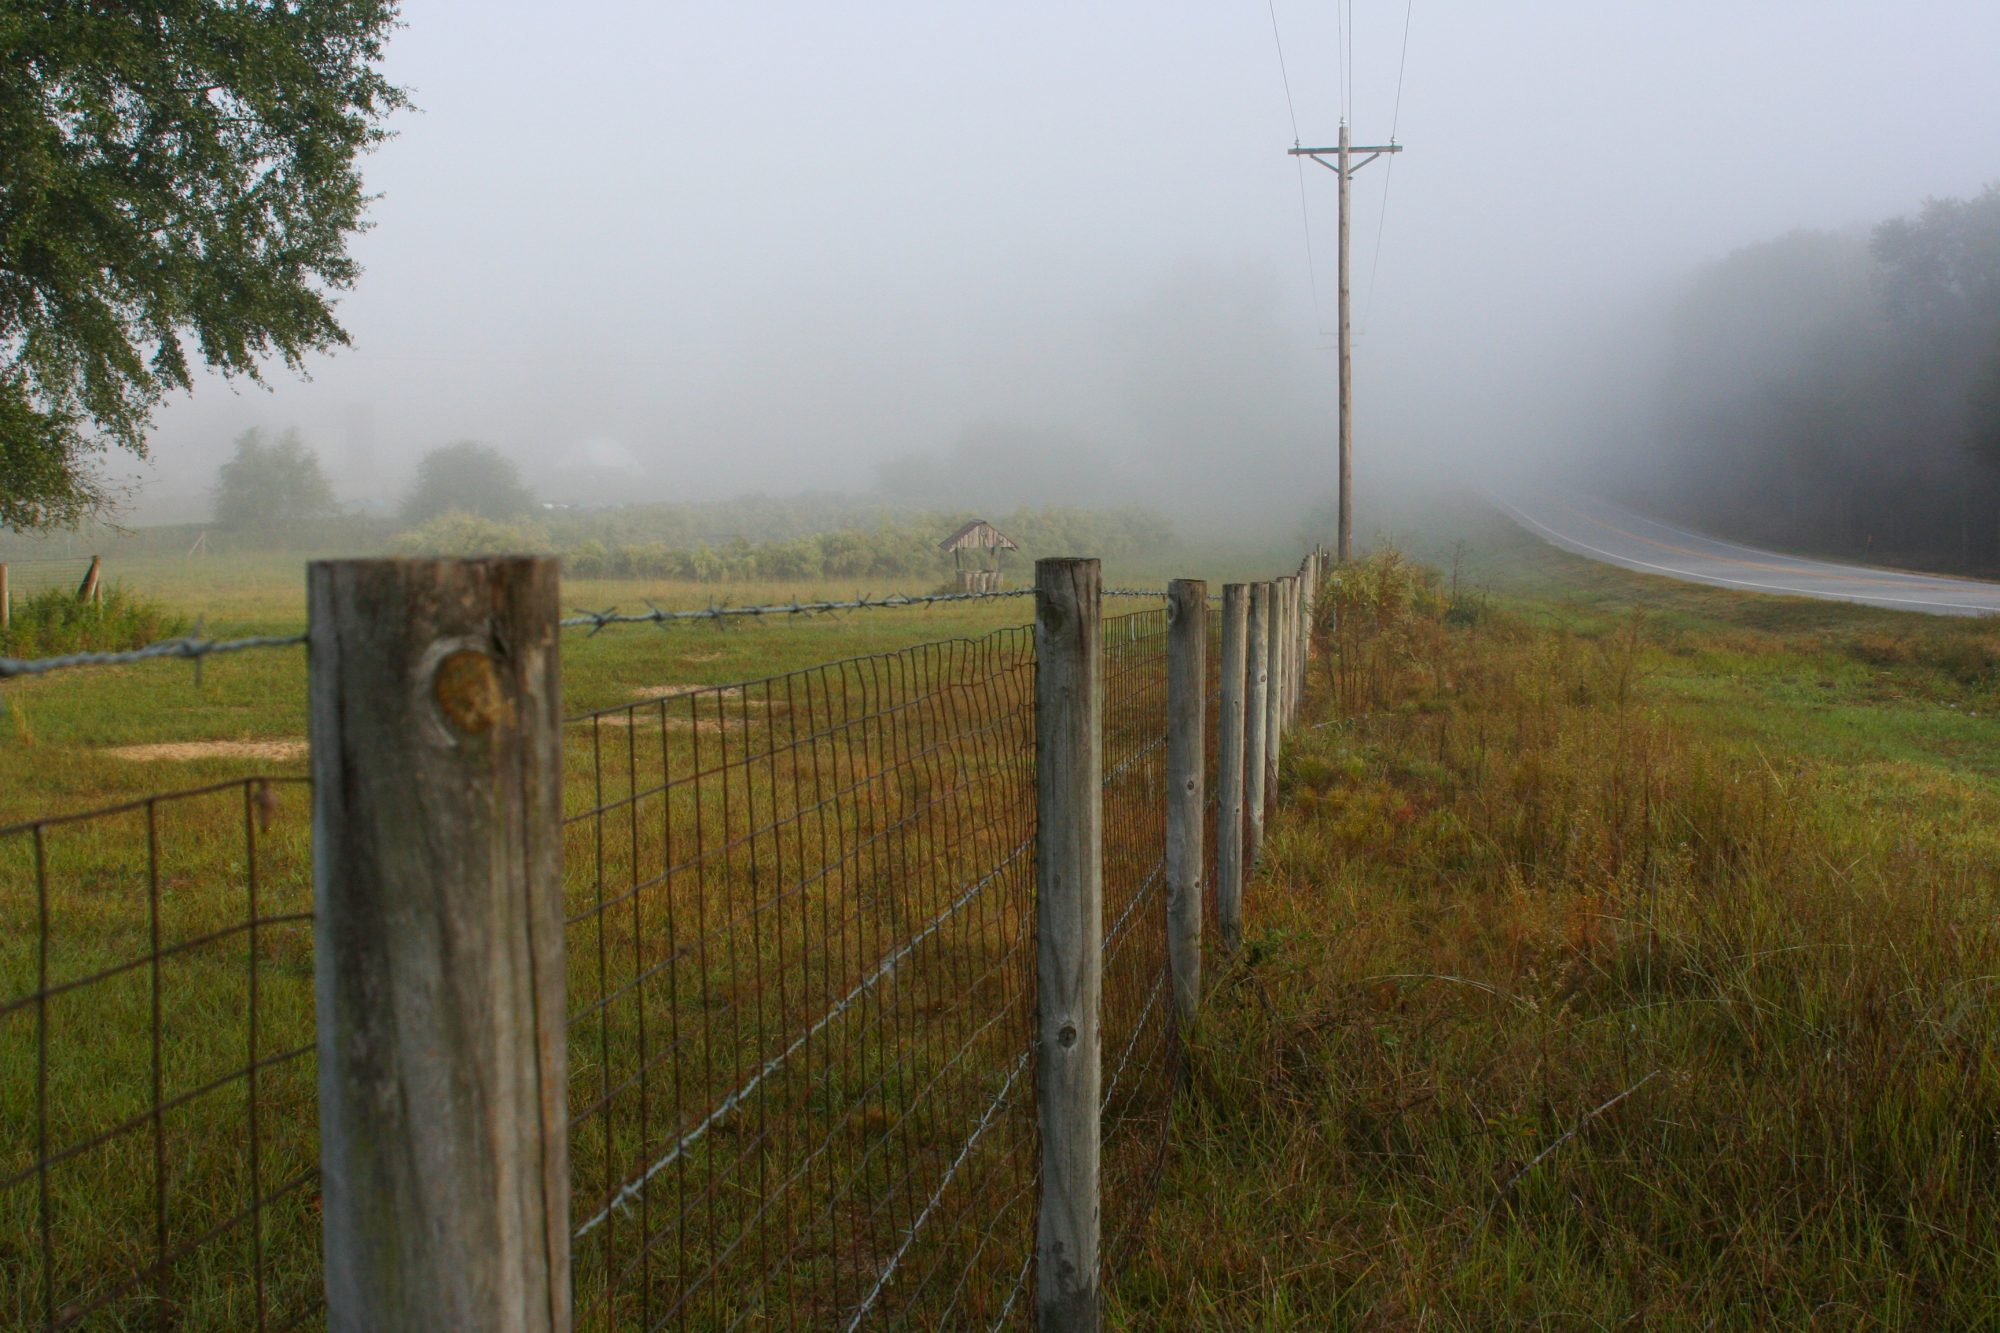 Foggy Road Side and Fence